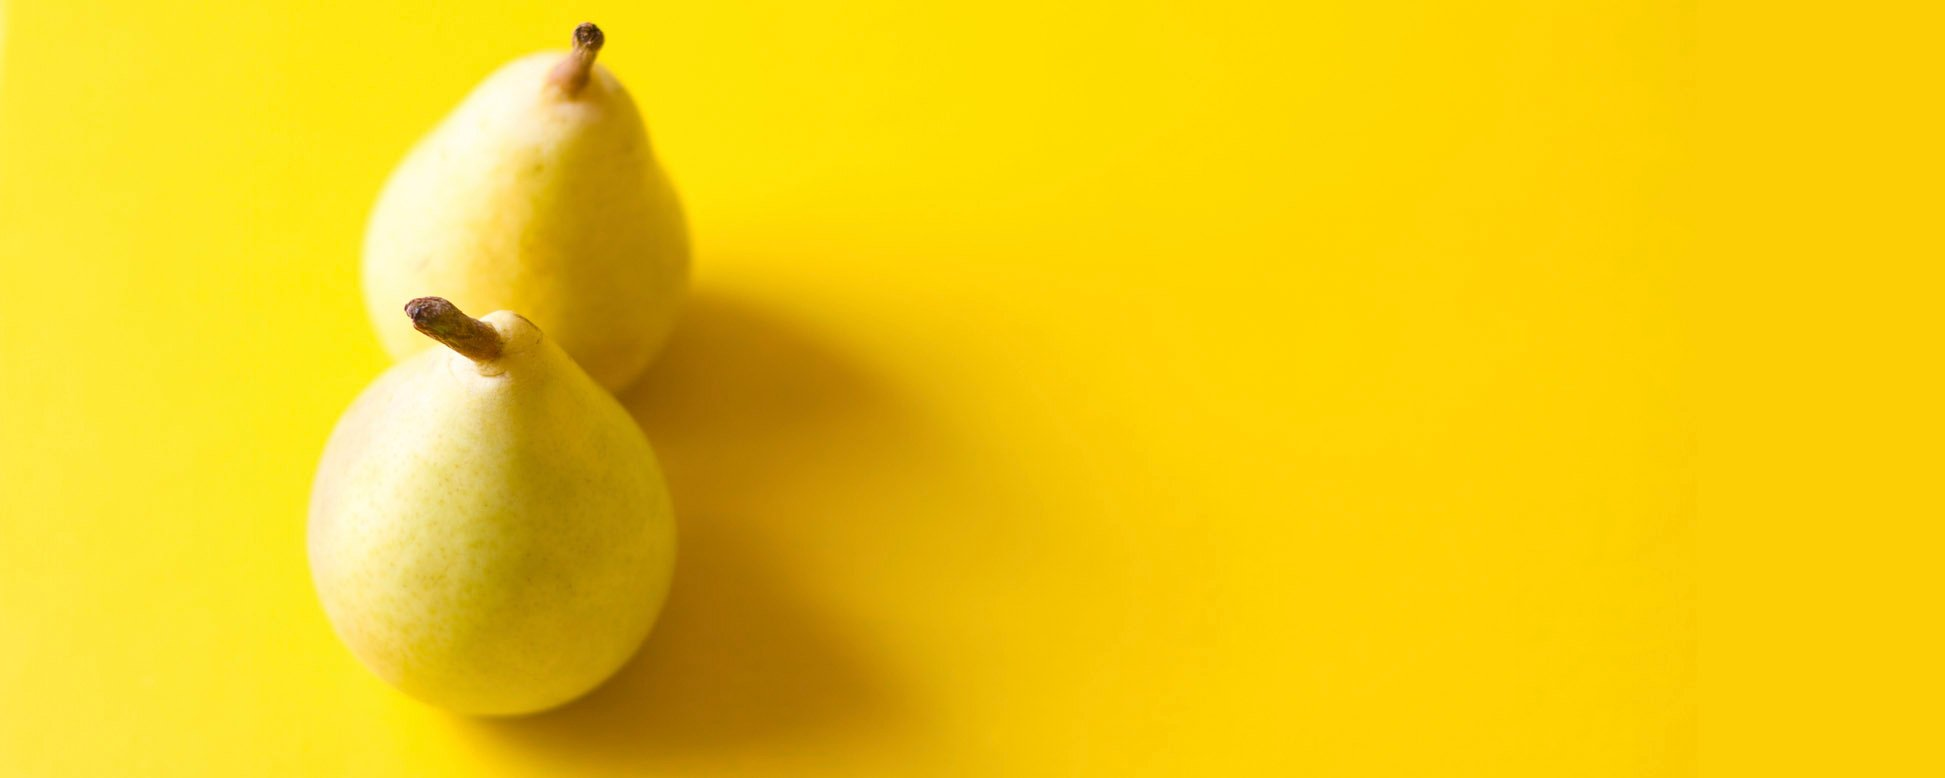 Pears on Yellow Background